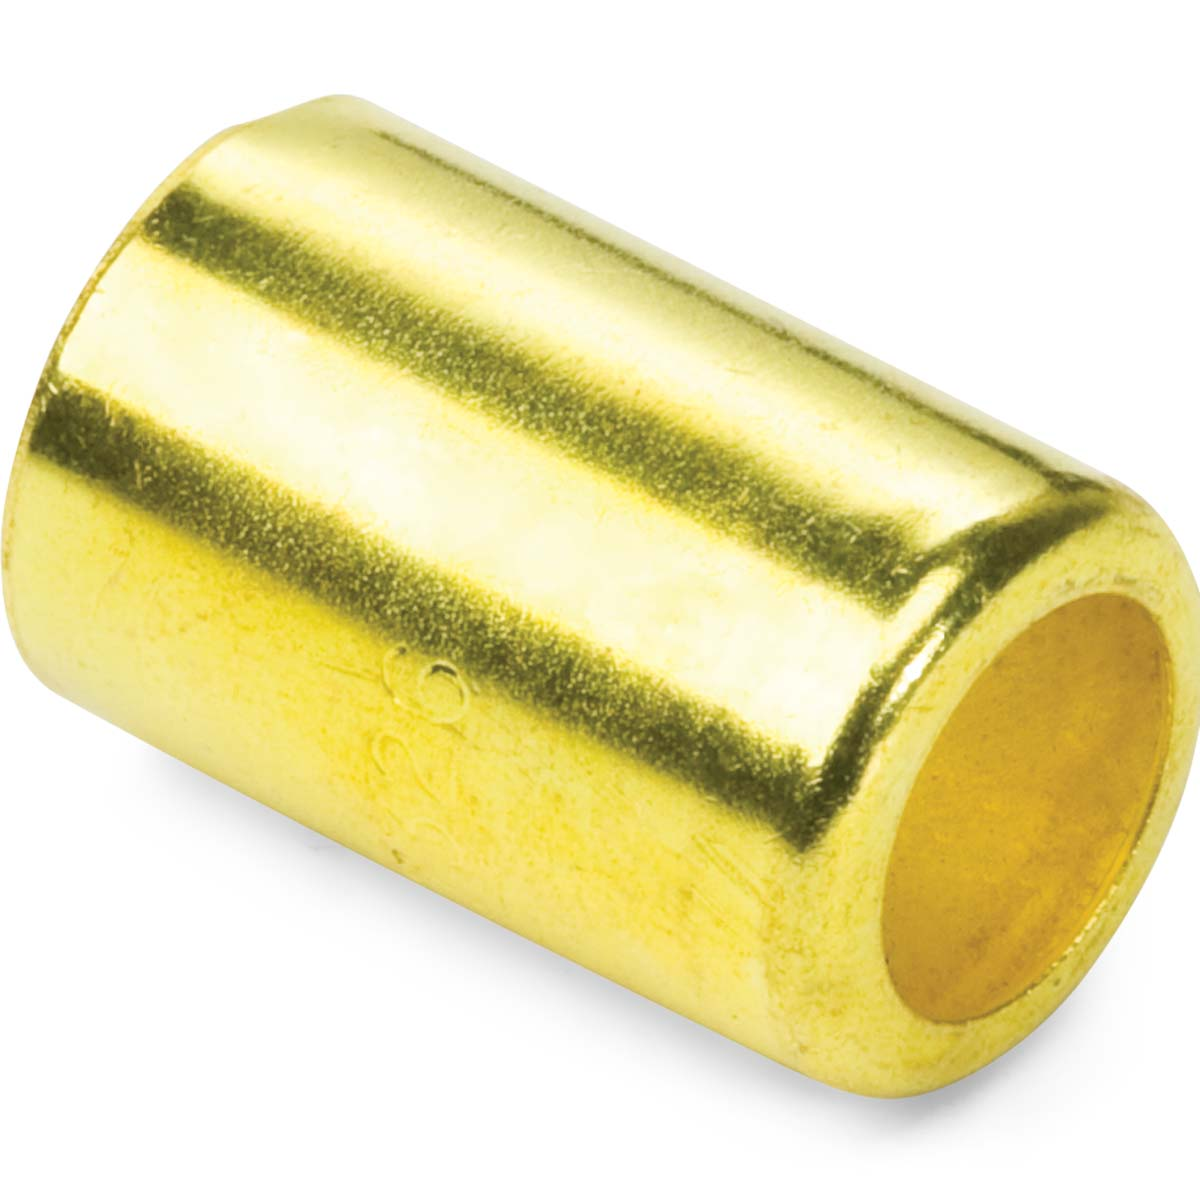 Air Hose Ferrule Kimball Midwest